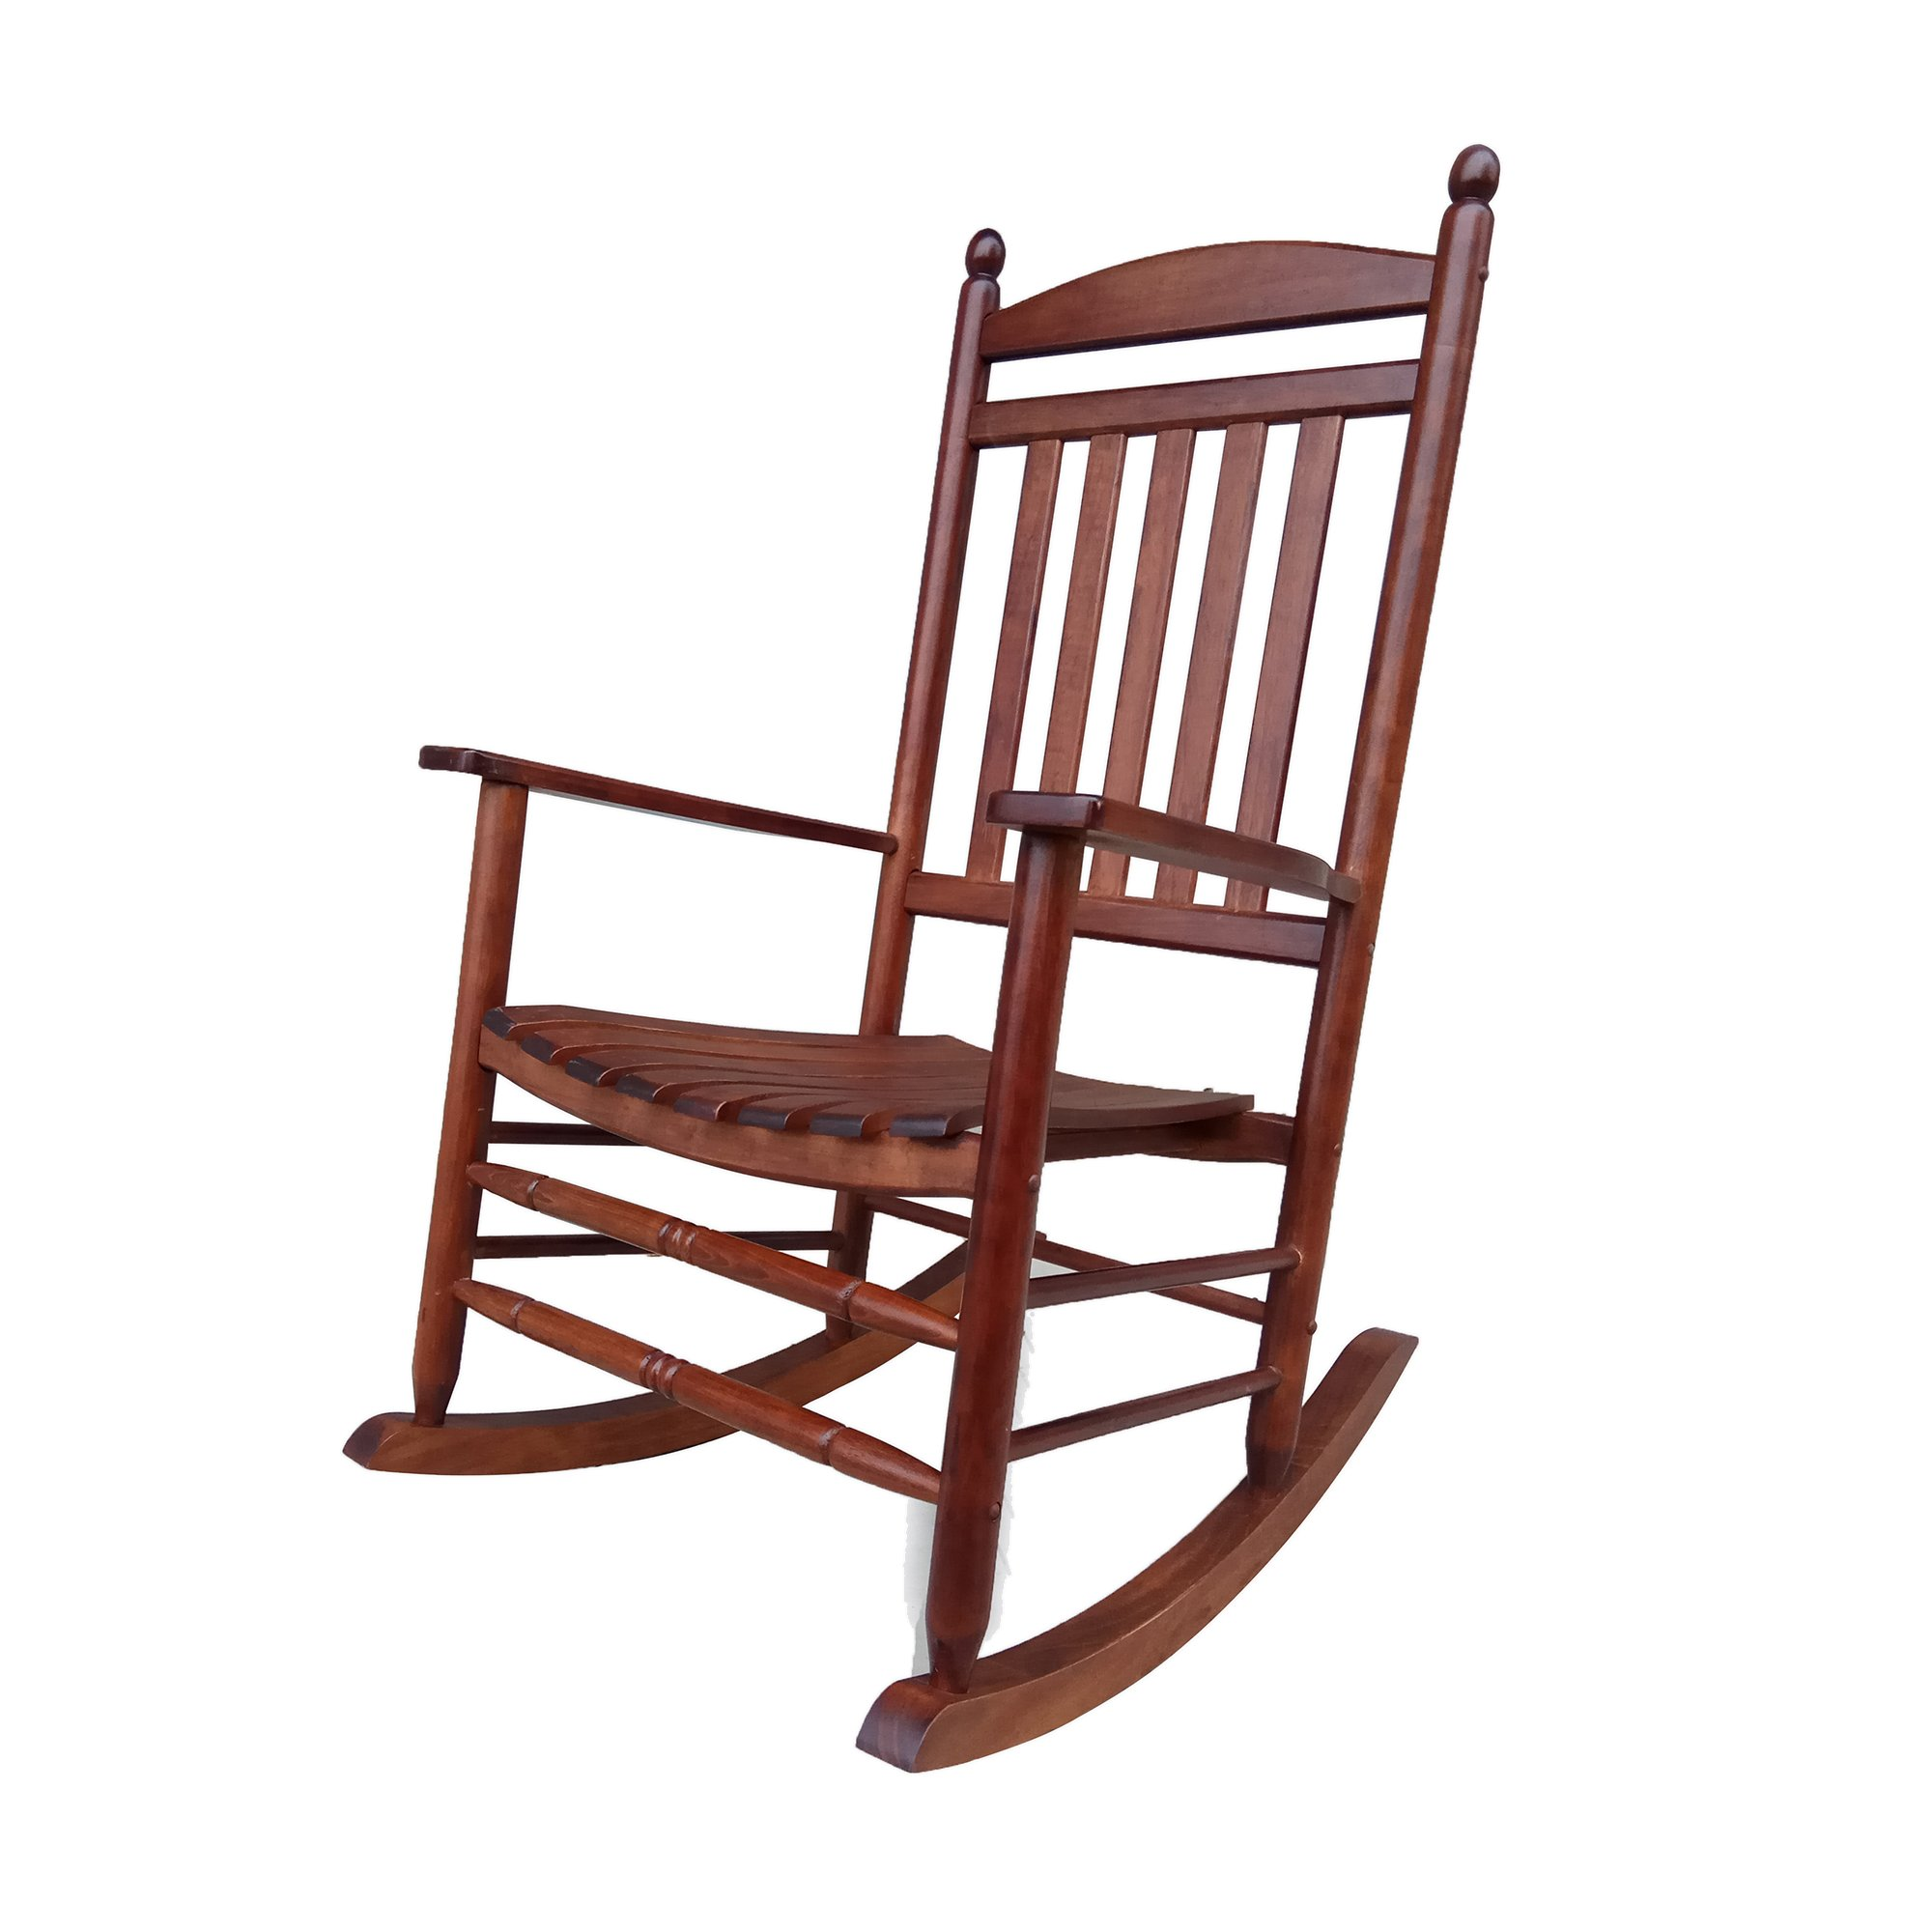 Rocking Rocker-A040NT Natural Wood Porch Rocker/Rocking Chair -Easy to Assemble-Comfortable Size-Outdoor or Indoor Use by Rockingrocker